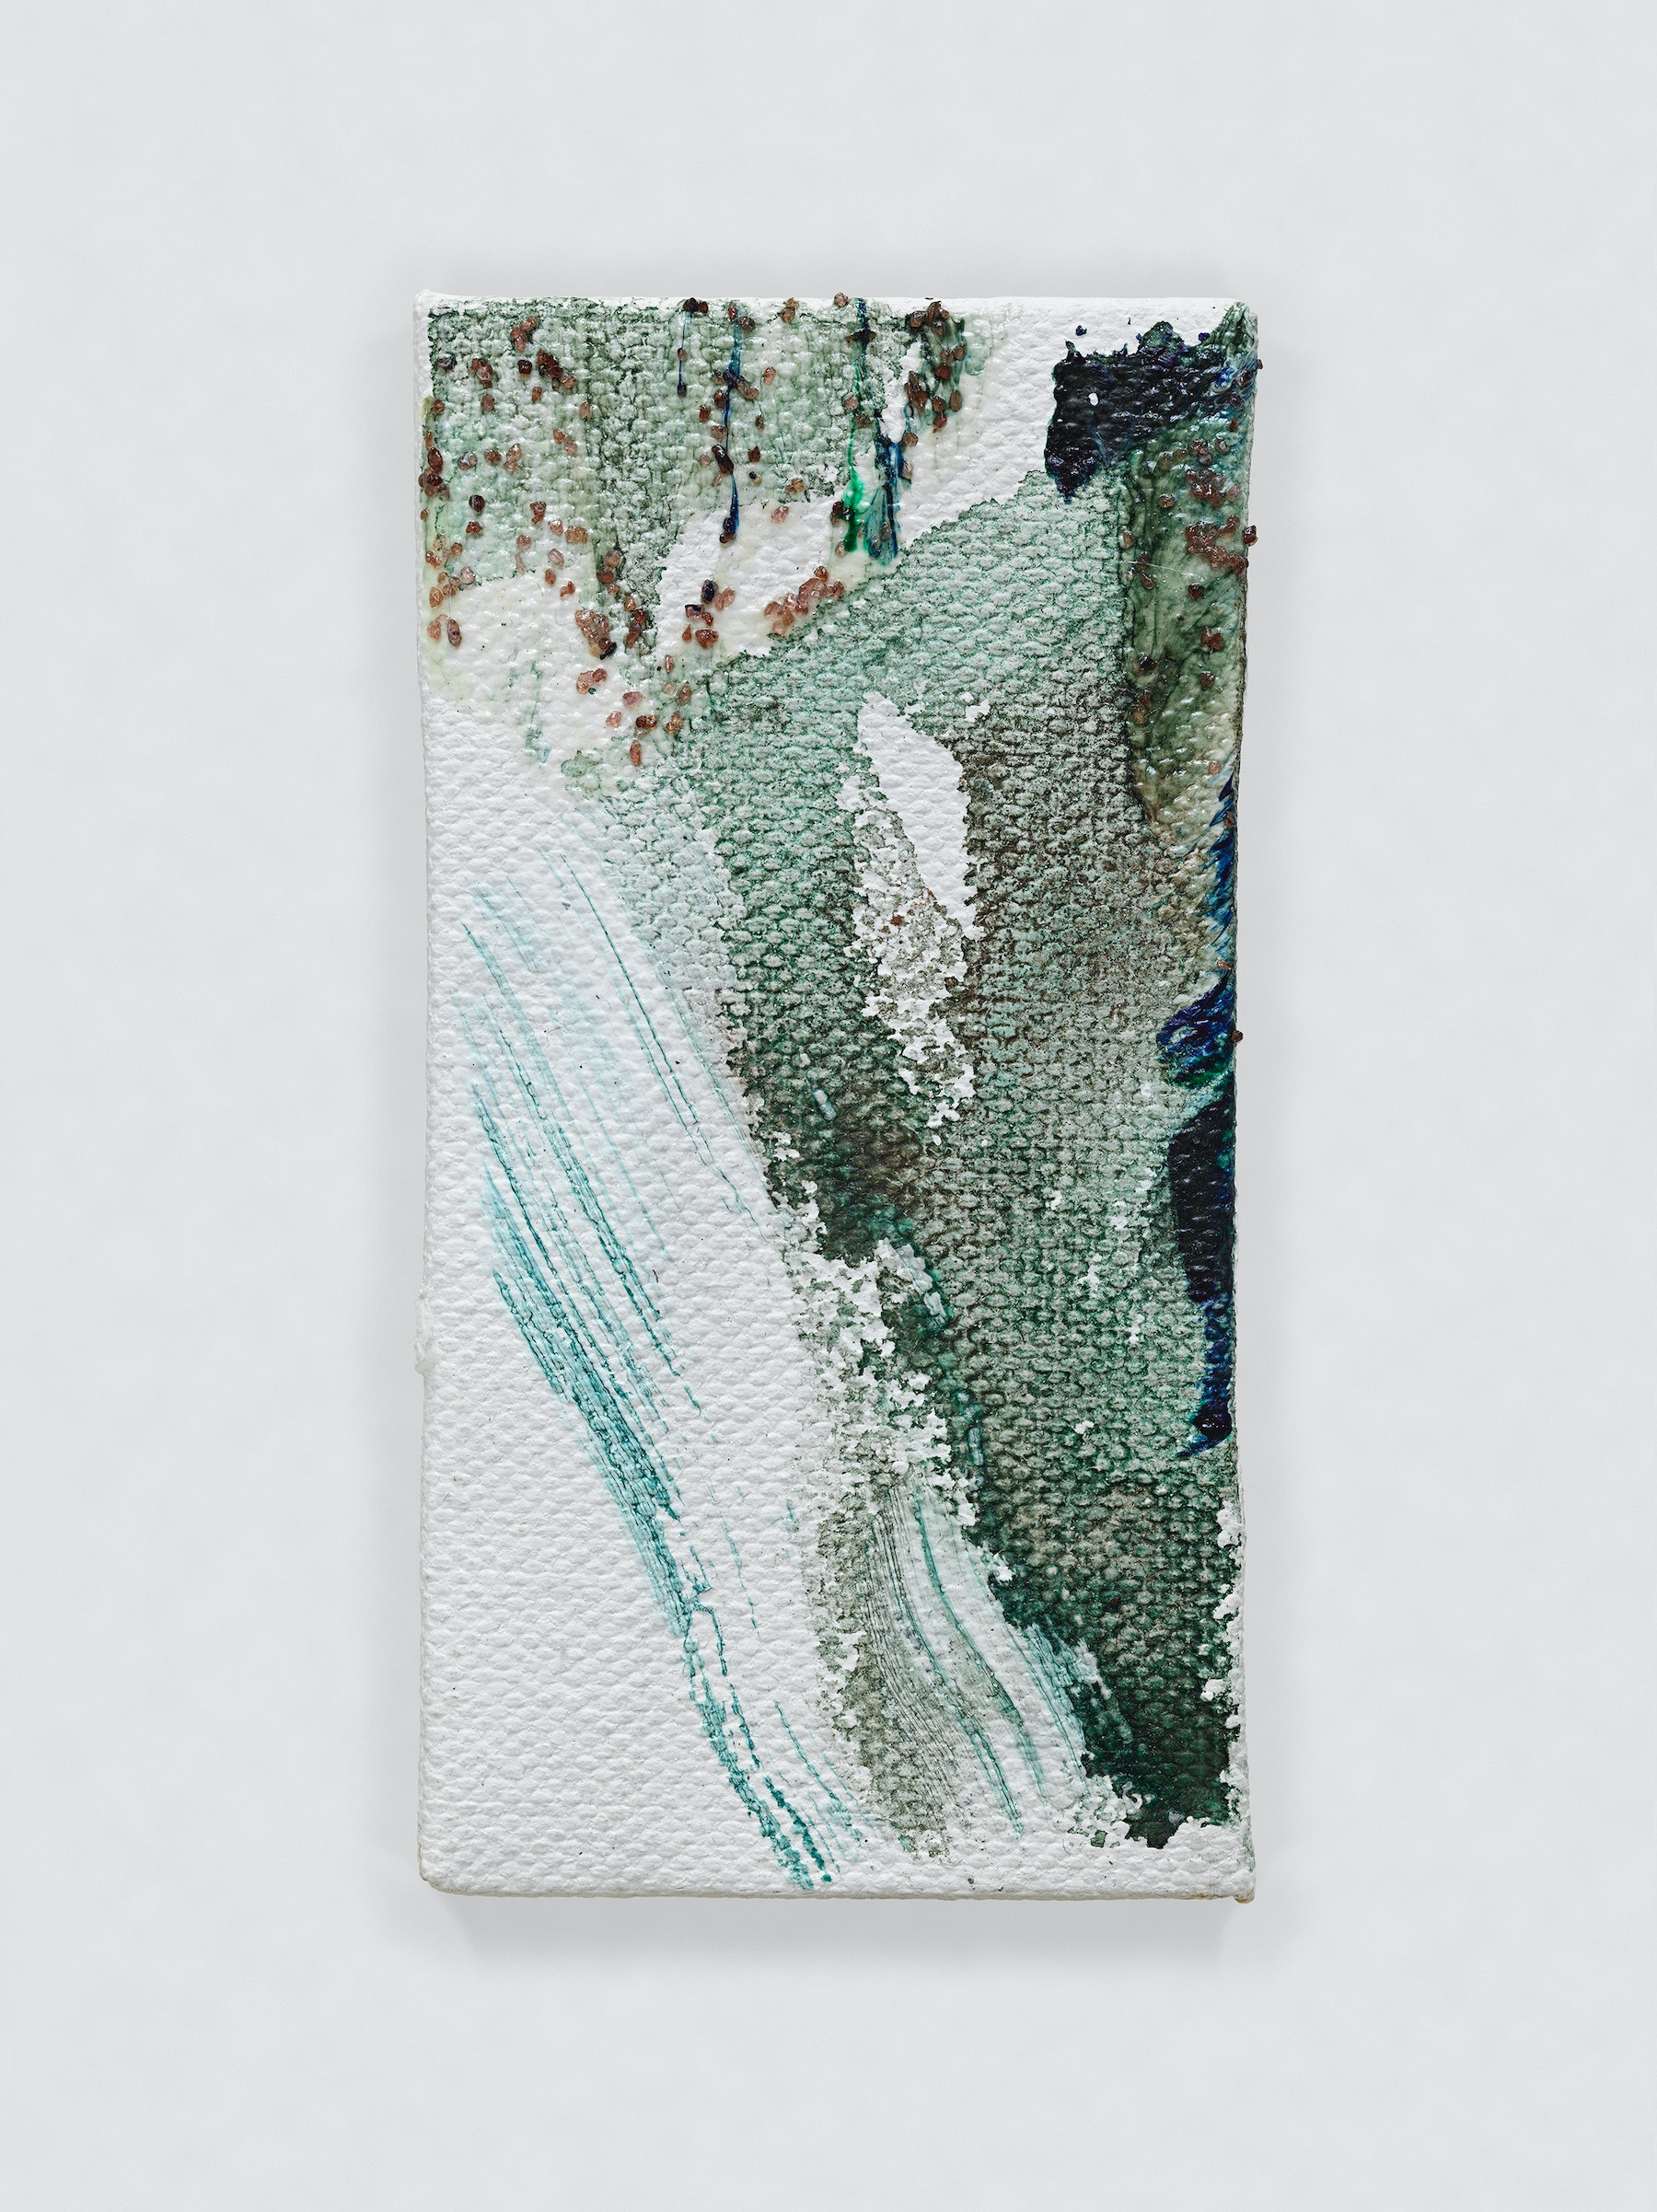 "Louise Fishman ""UNTITLED,"" 2014 Oil, sand and glue on canvas 4.06 x 2.09"" [HxW] (10.31 x 5.31 cm) Inventory #FIS142 Courtesy of the artist and Vielmetter Los Angeles Photo credit: Genevieve Hanson Signed and dated on verso"